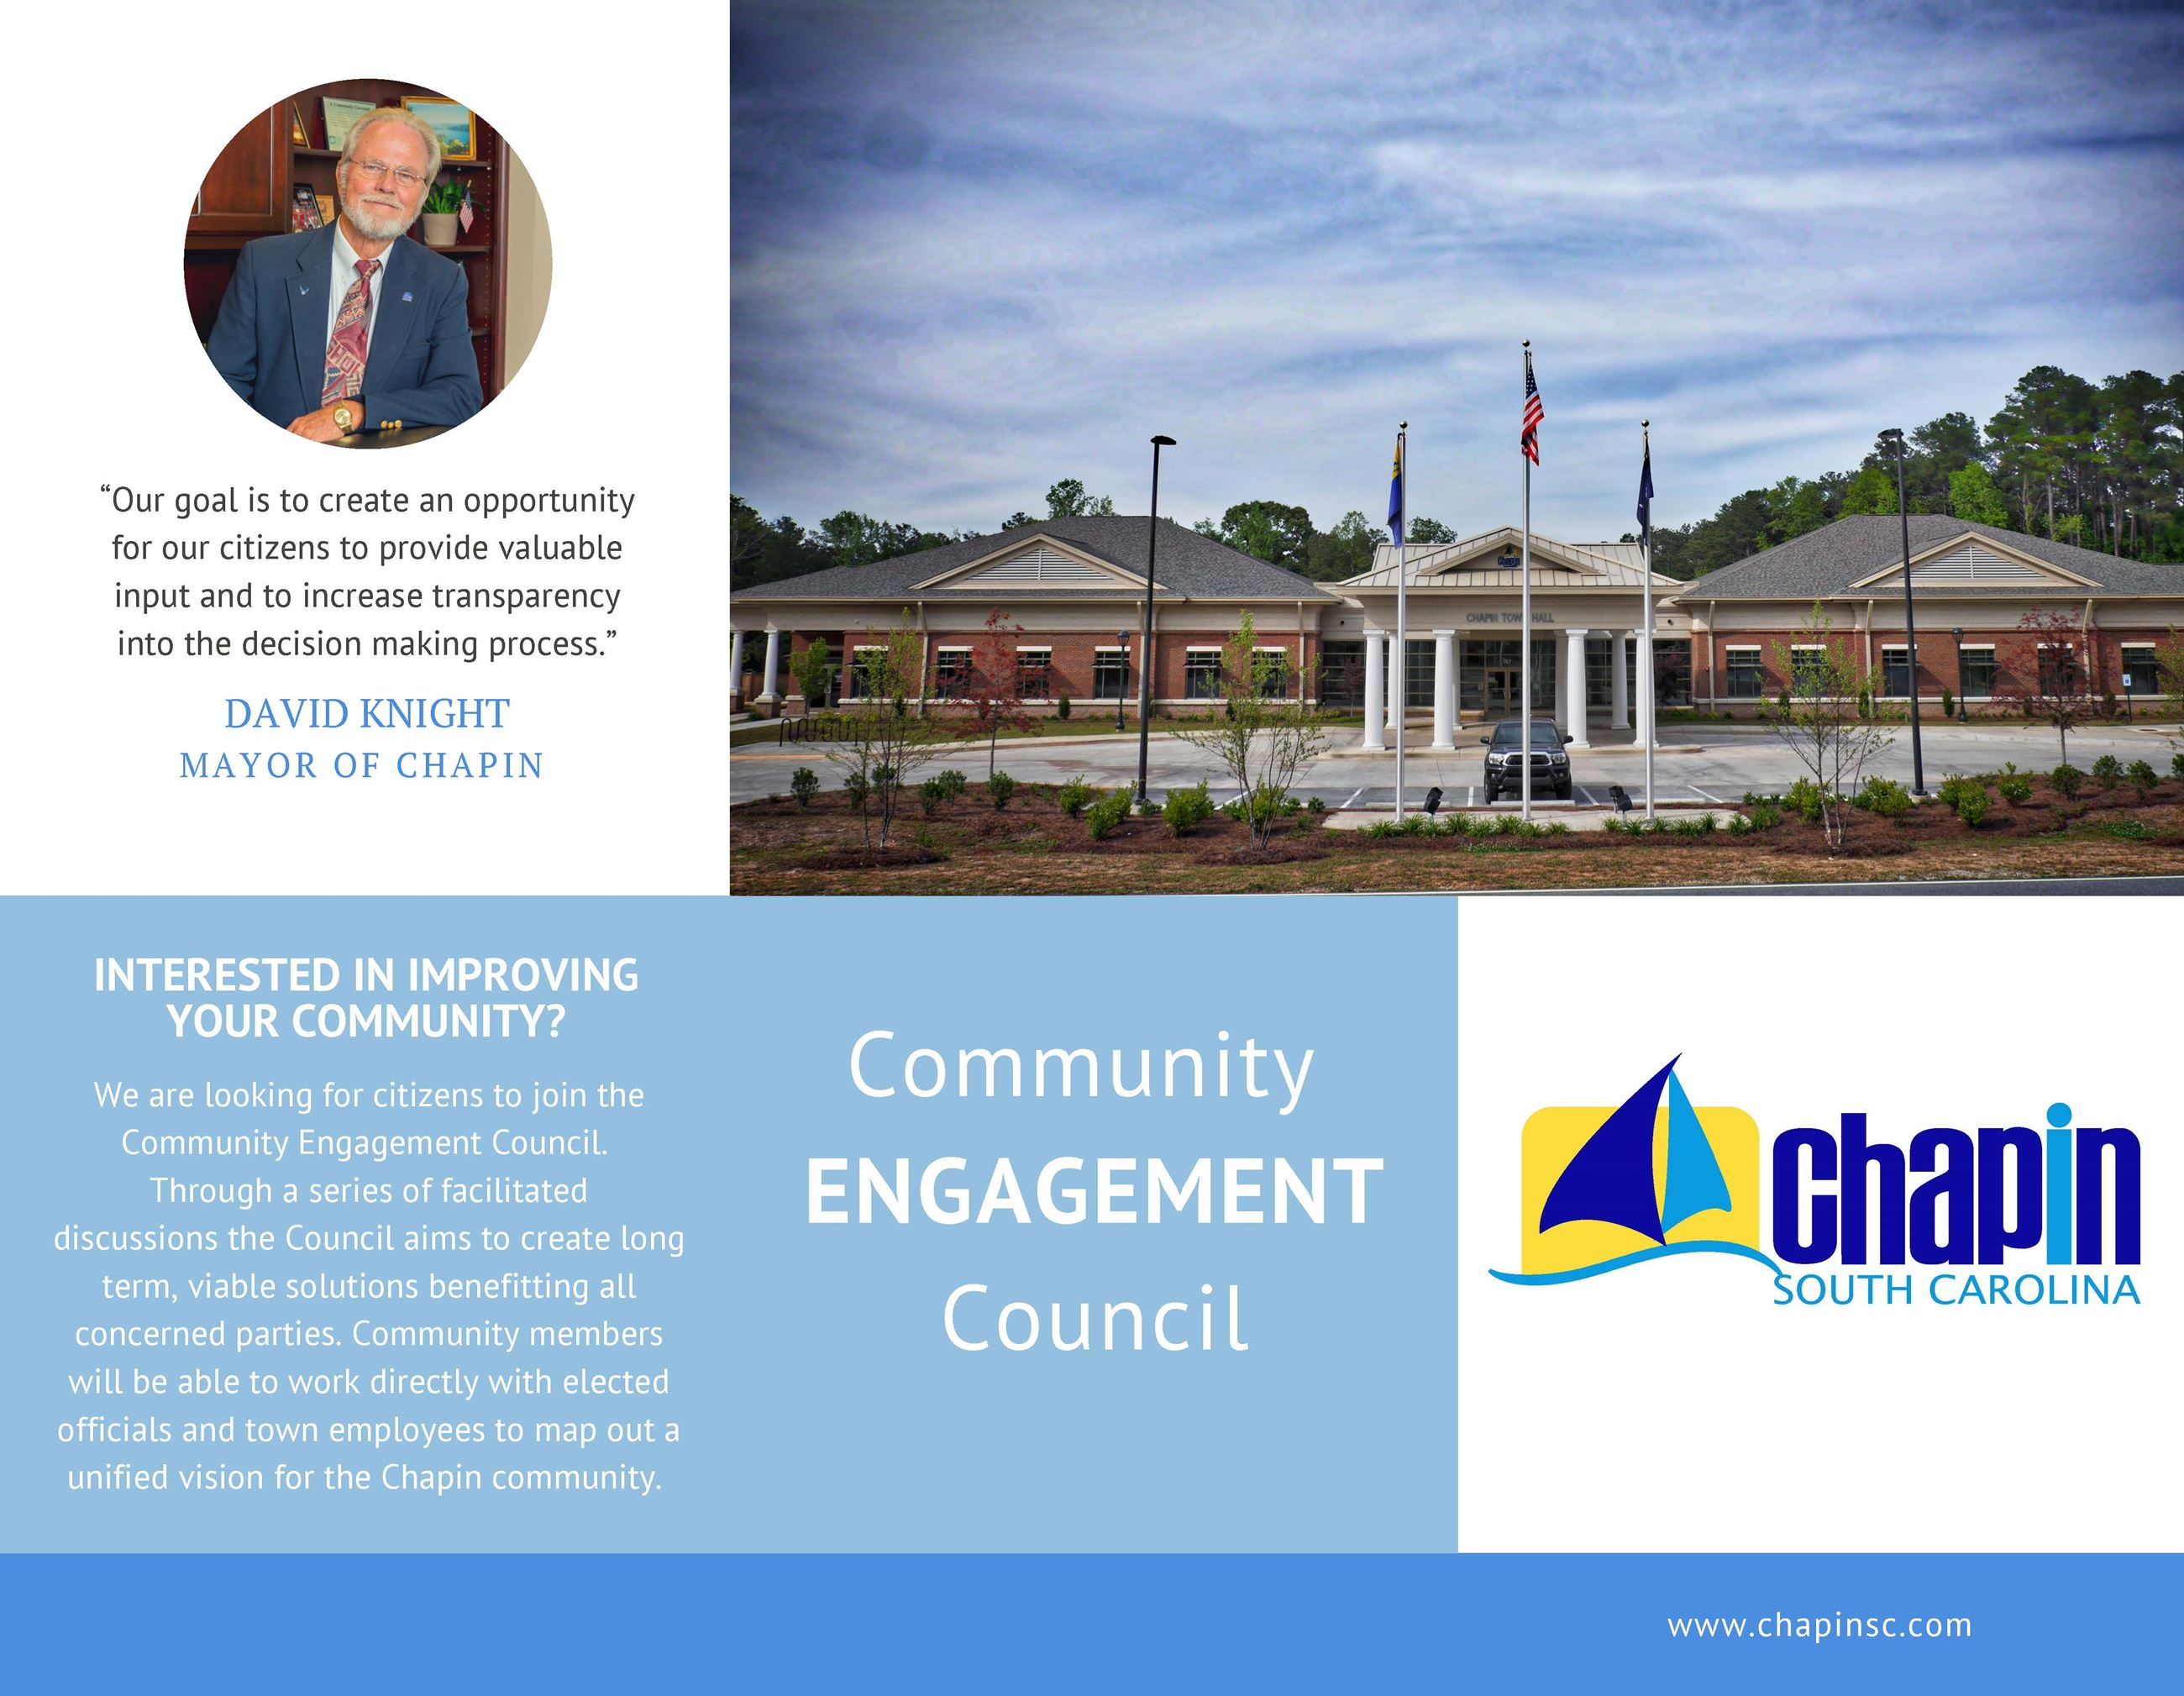 Community Engagement Council